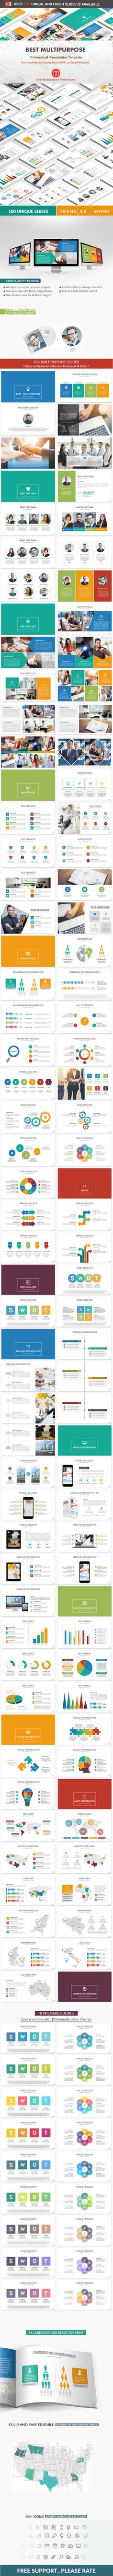 Best Multipurpose PowerPoint Presentation Template - Business PowerPoint Templates